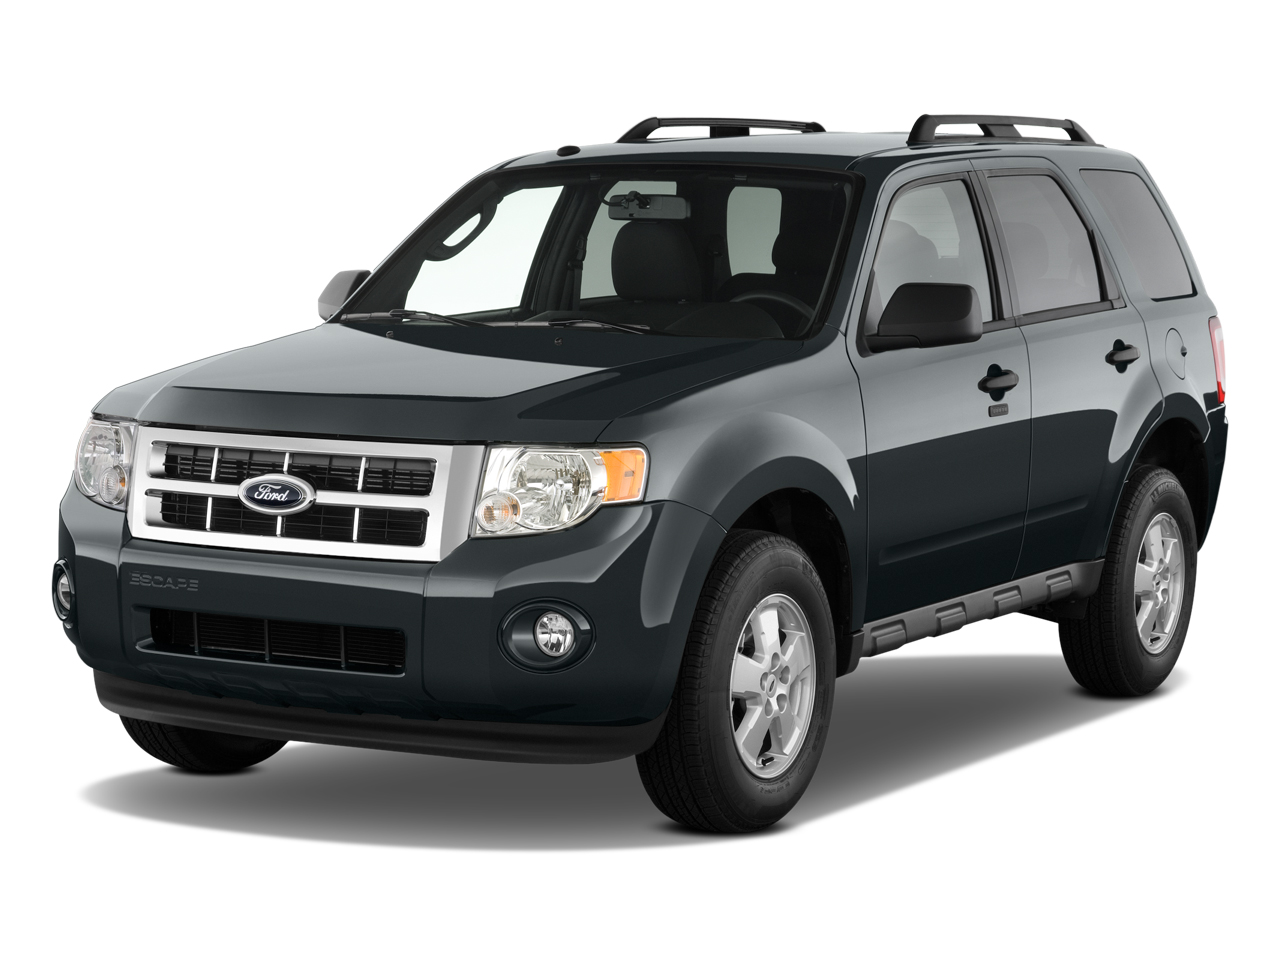 2011-ford-escape-fwd-4-door-xlt-angular-front-exterior ...